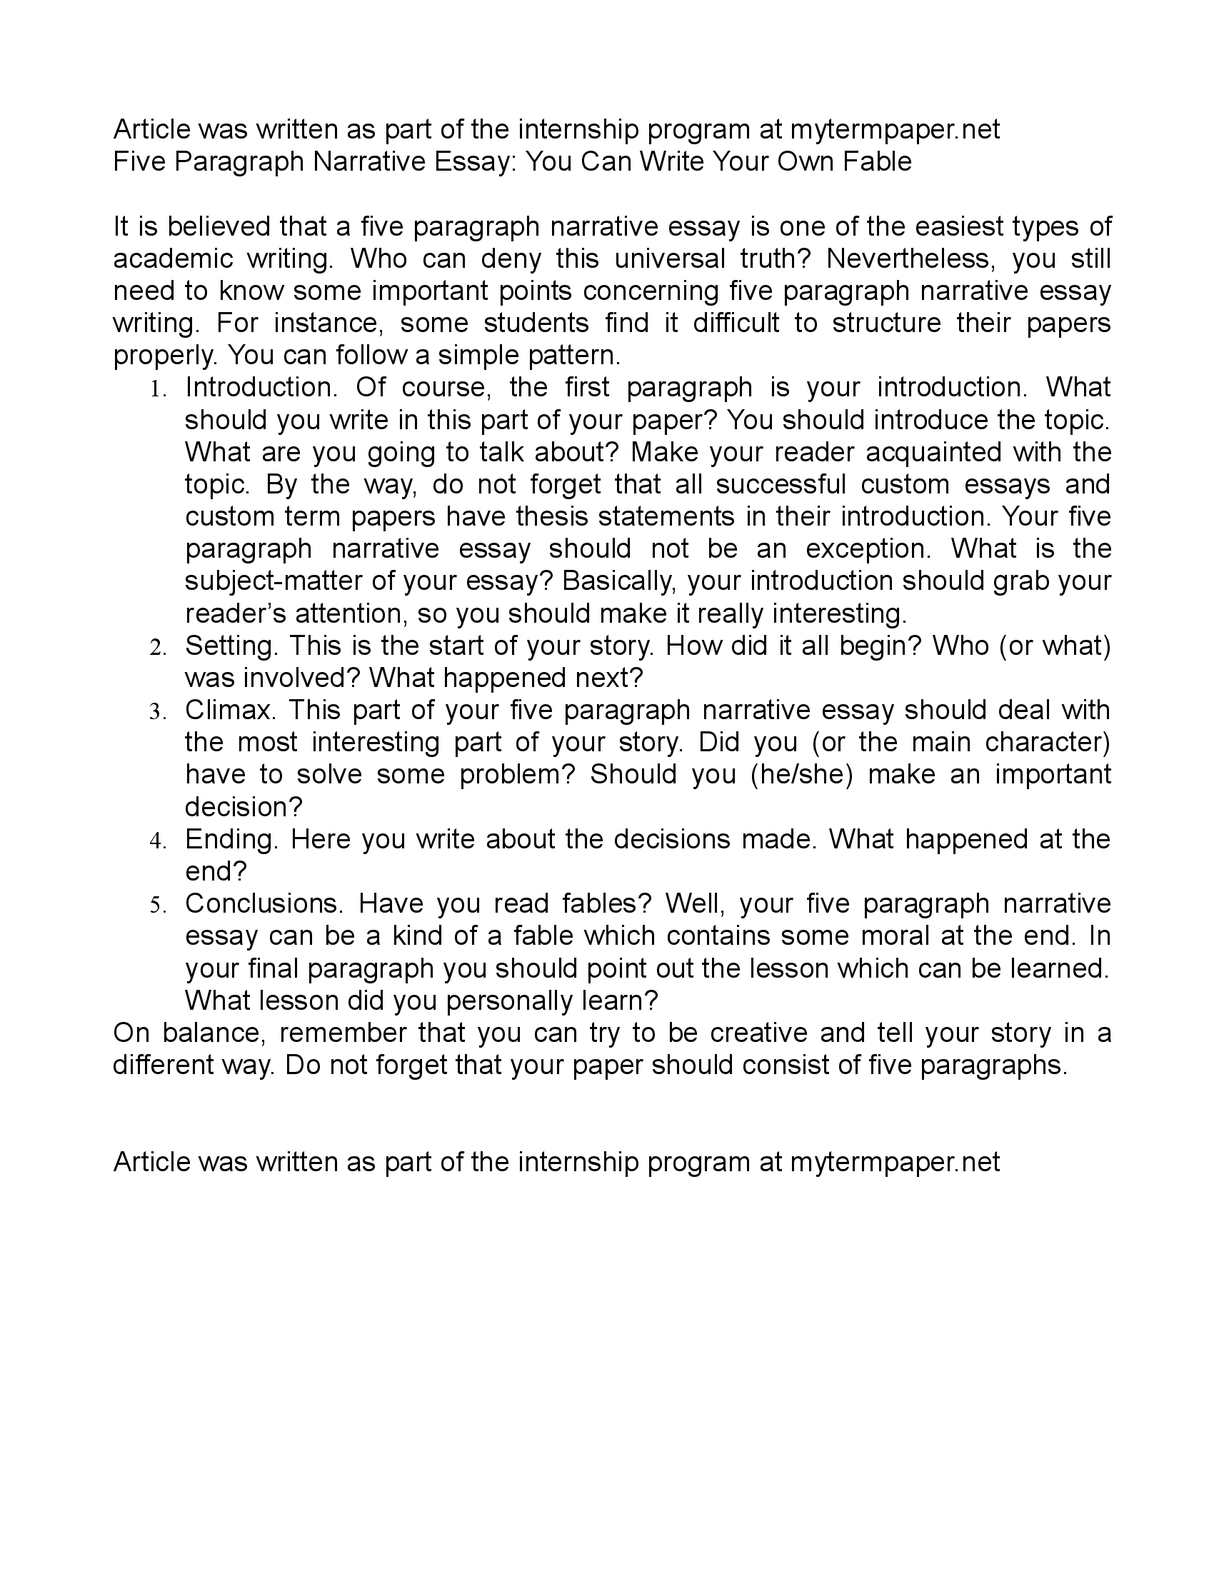 calamo five paragraph narrative essay you can write your own fable - Personal Narrative Essay Examples